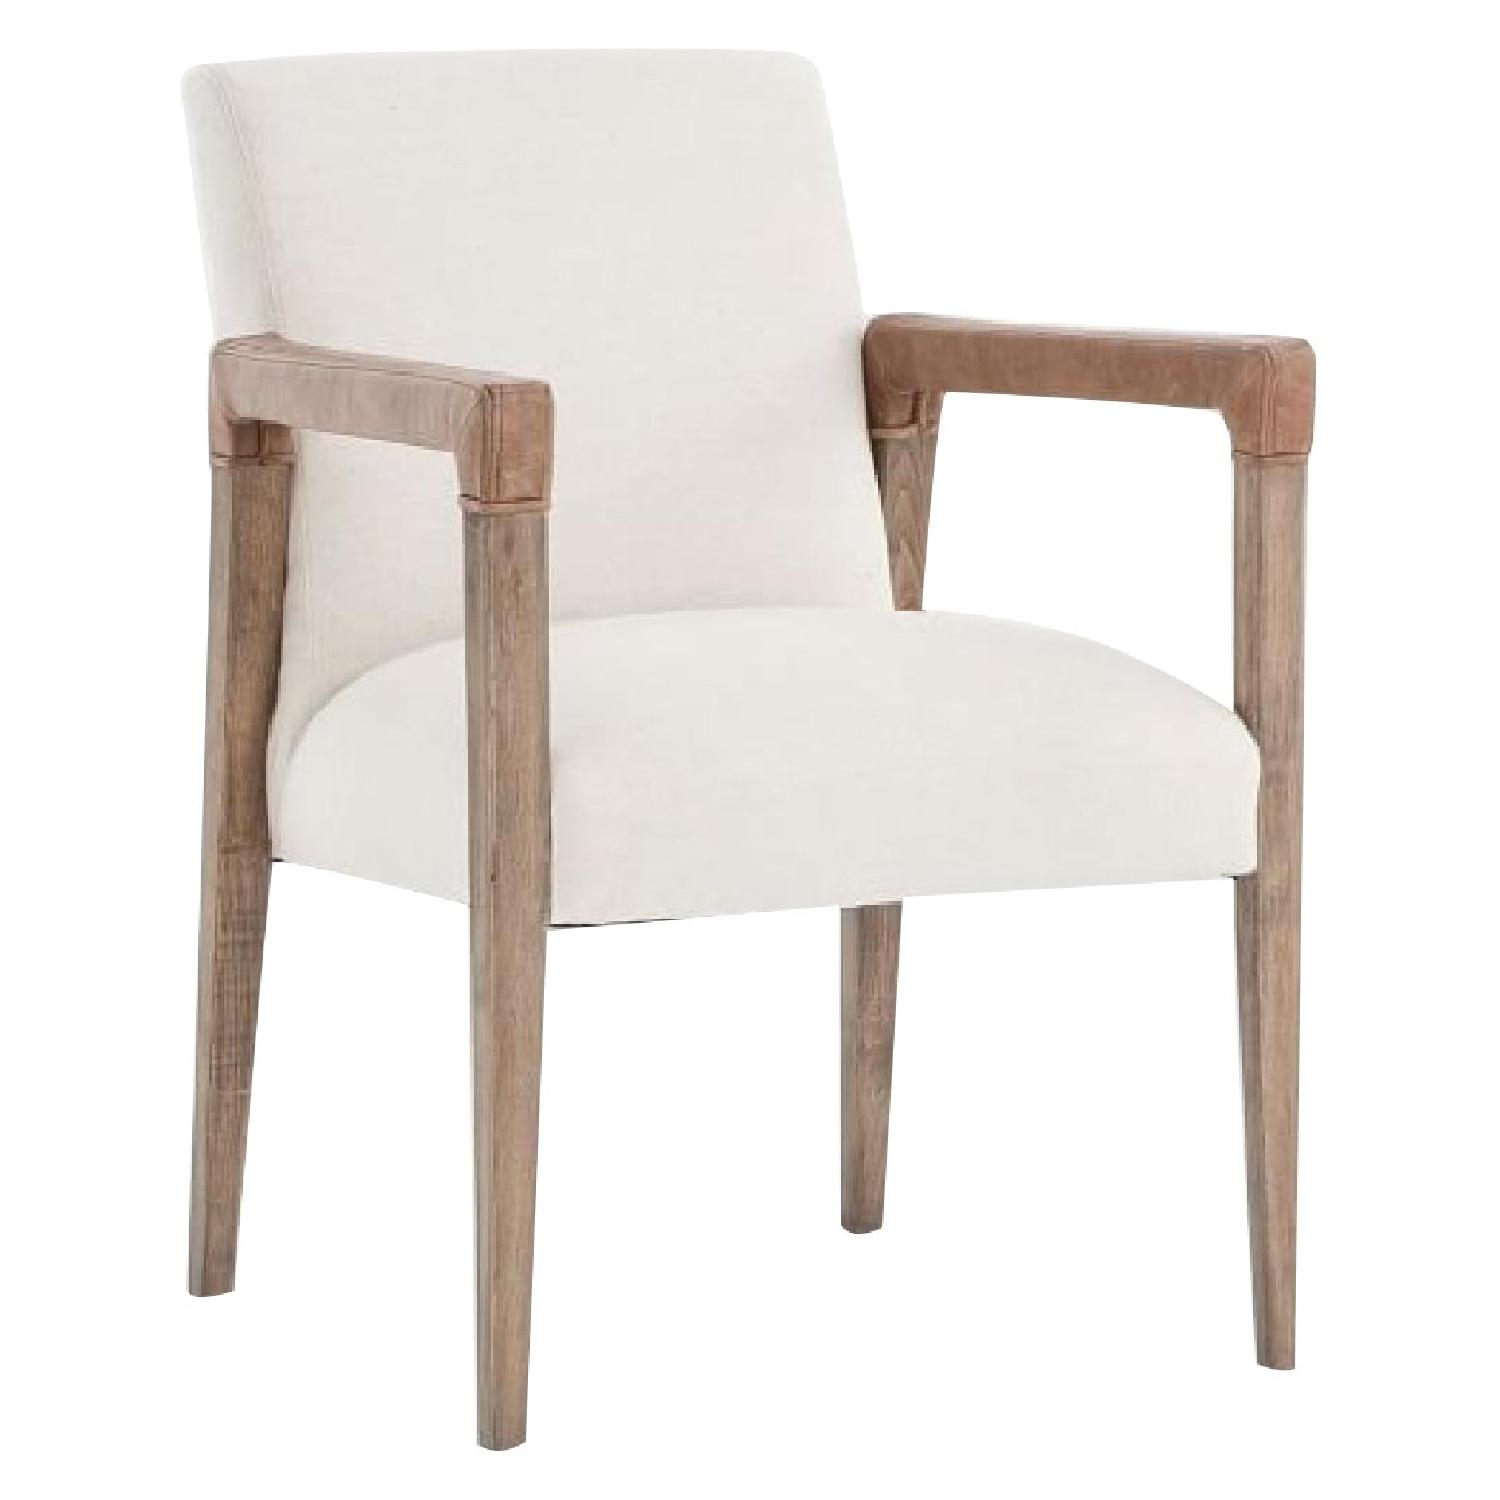 West Elm Wood & Fabric Chair w/ Leather Accent